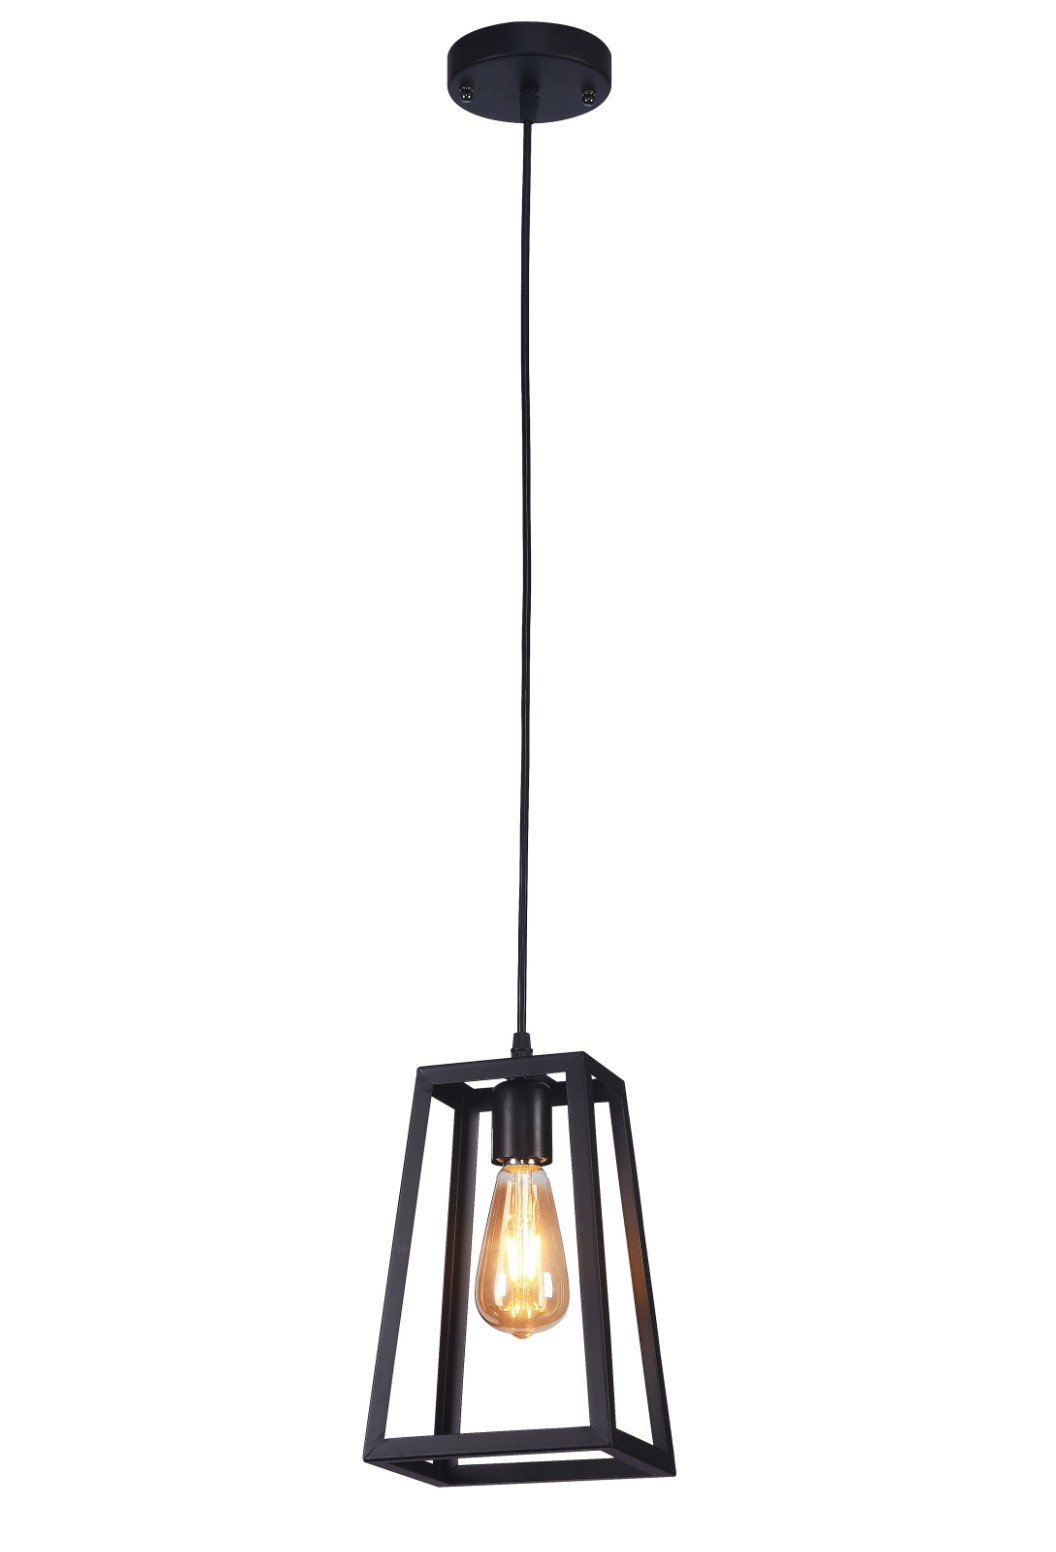 Cabott 1 Light Square/rectangle Pendant With Most Recent Nolan 1 Light Lantern Chandeliers (View 4 of 20)